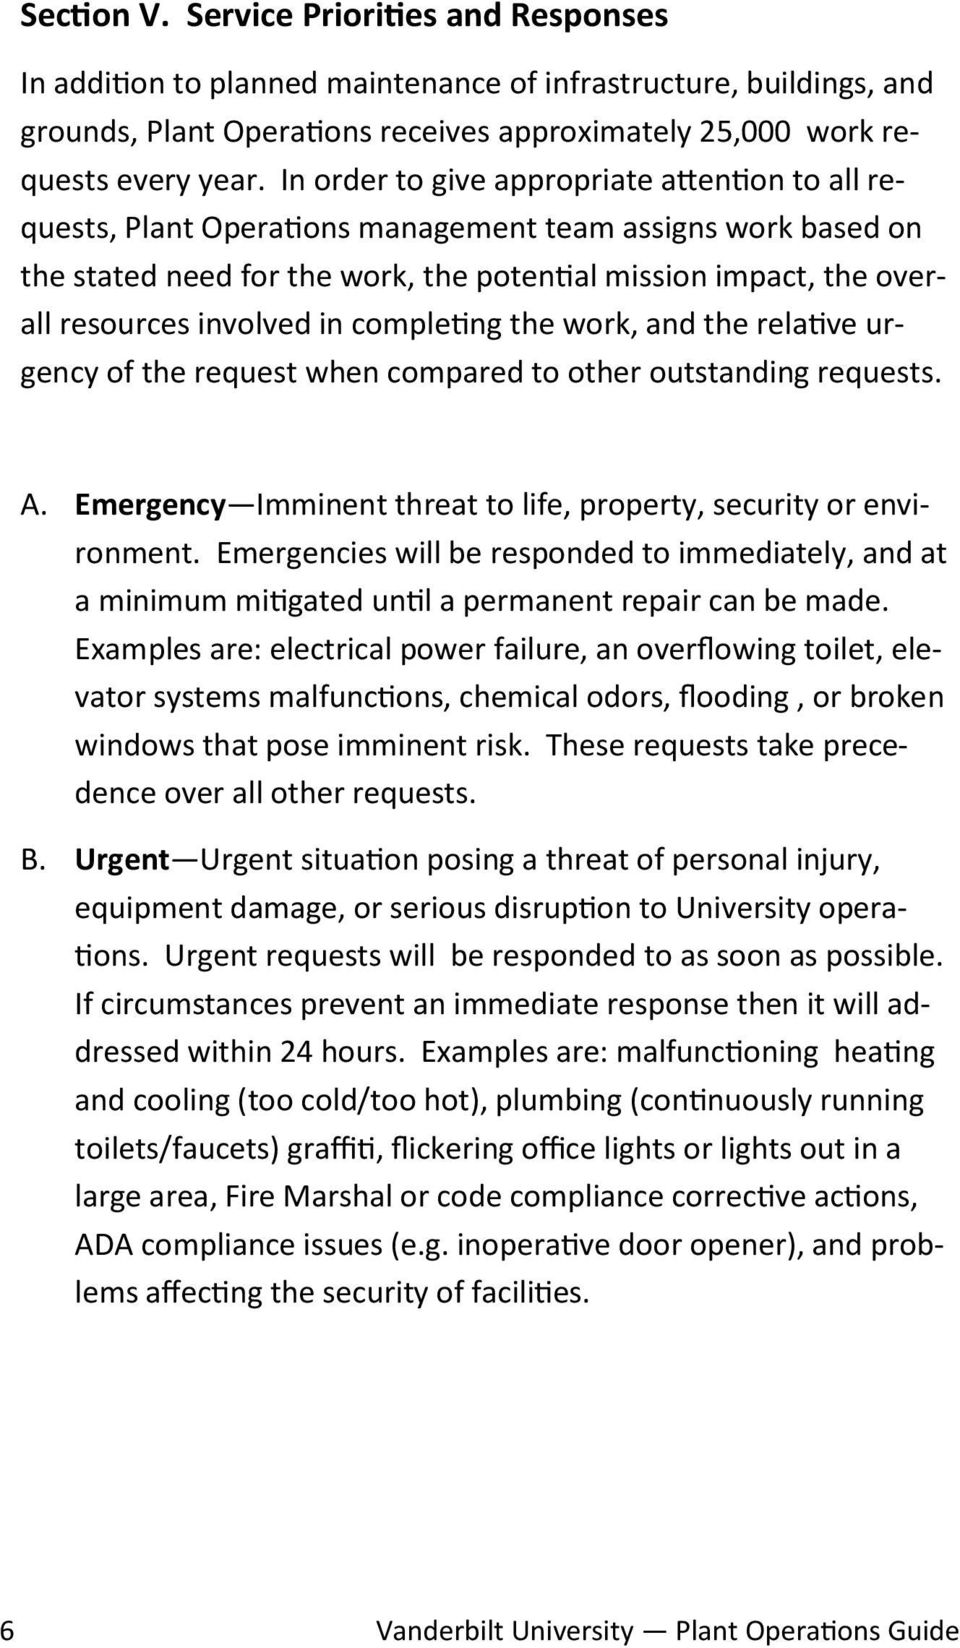 involved in completing the work, and the relative urgency of the request when compared to other outstanding requests. A. Emergency Imminent threat to life, property, security or environment.